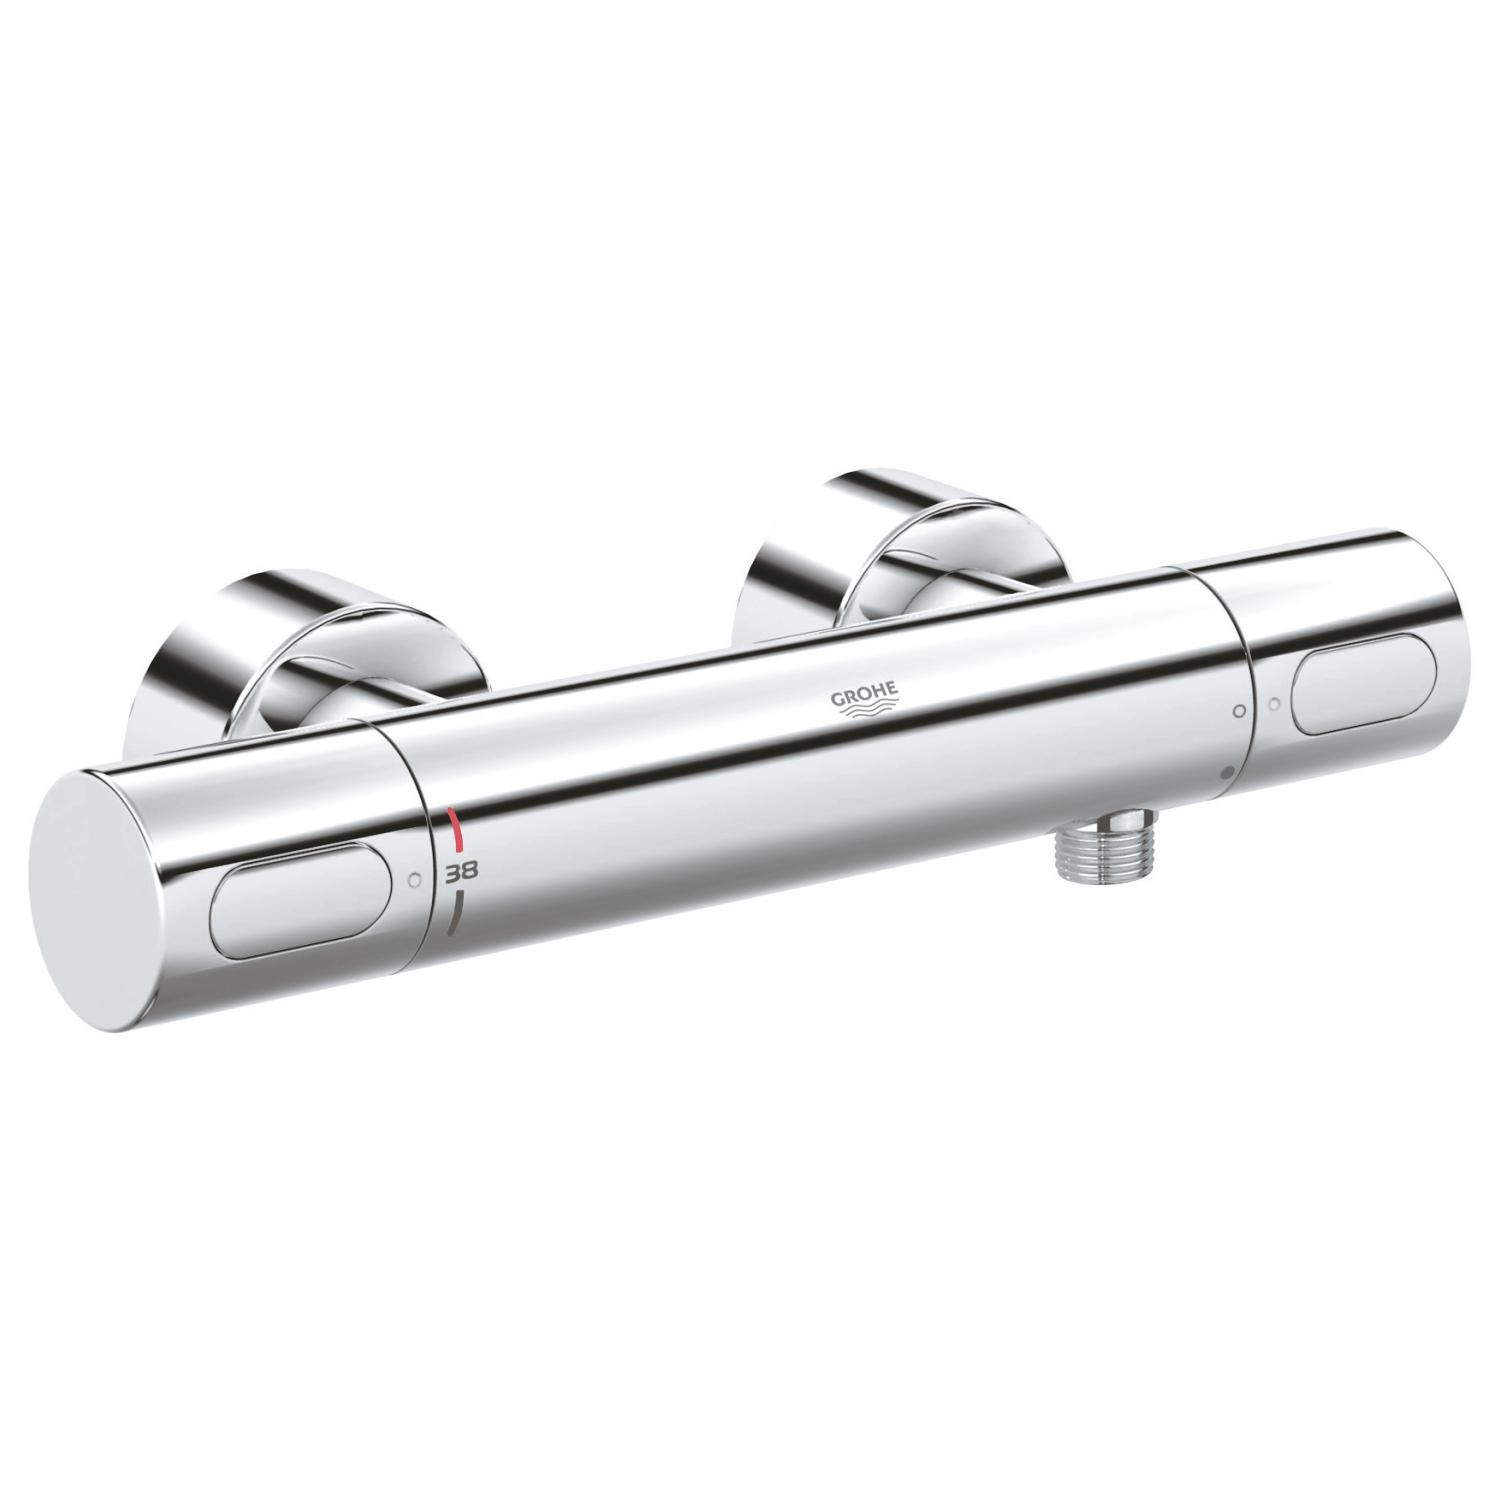 GROHE Grohtherm 3000 Cosmopolitan bei xTWO